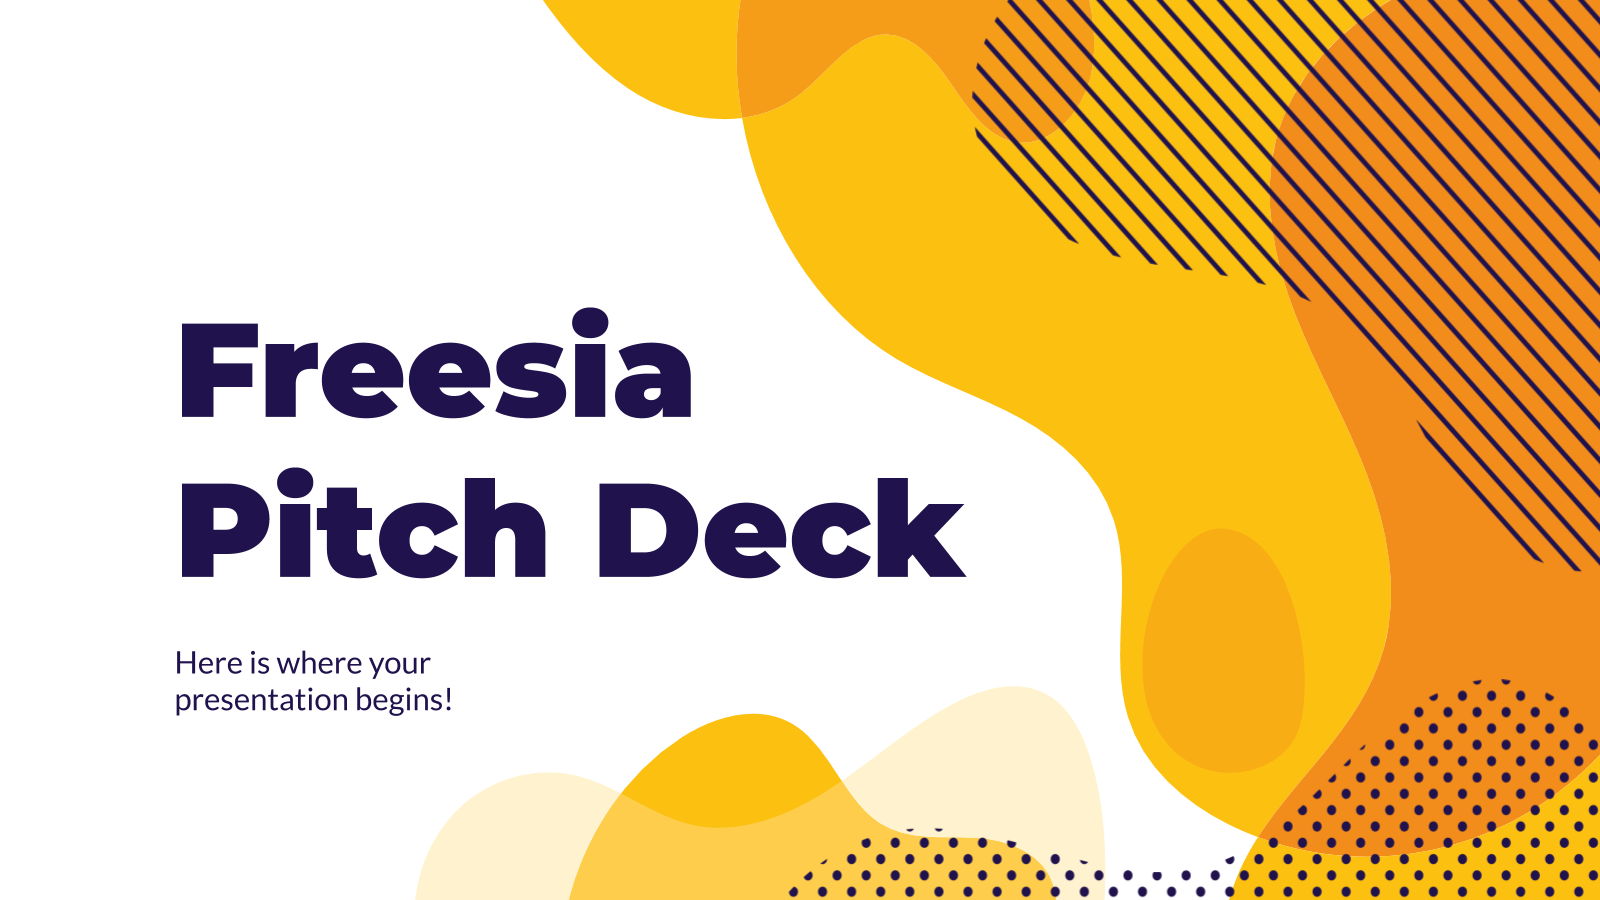 Freesia Pitch Deck presentation template